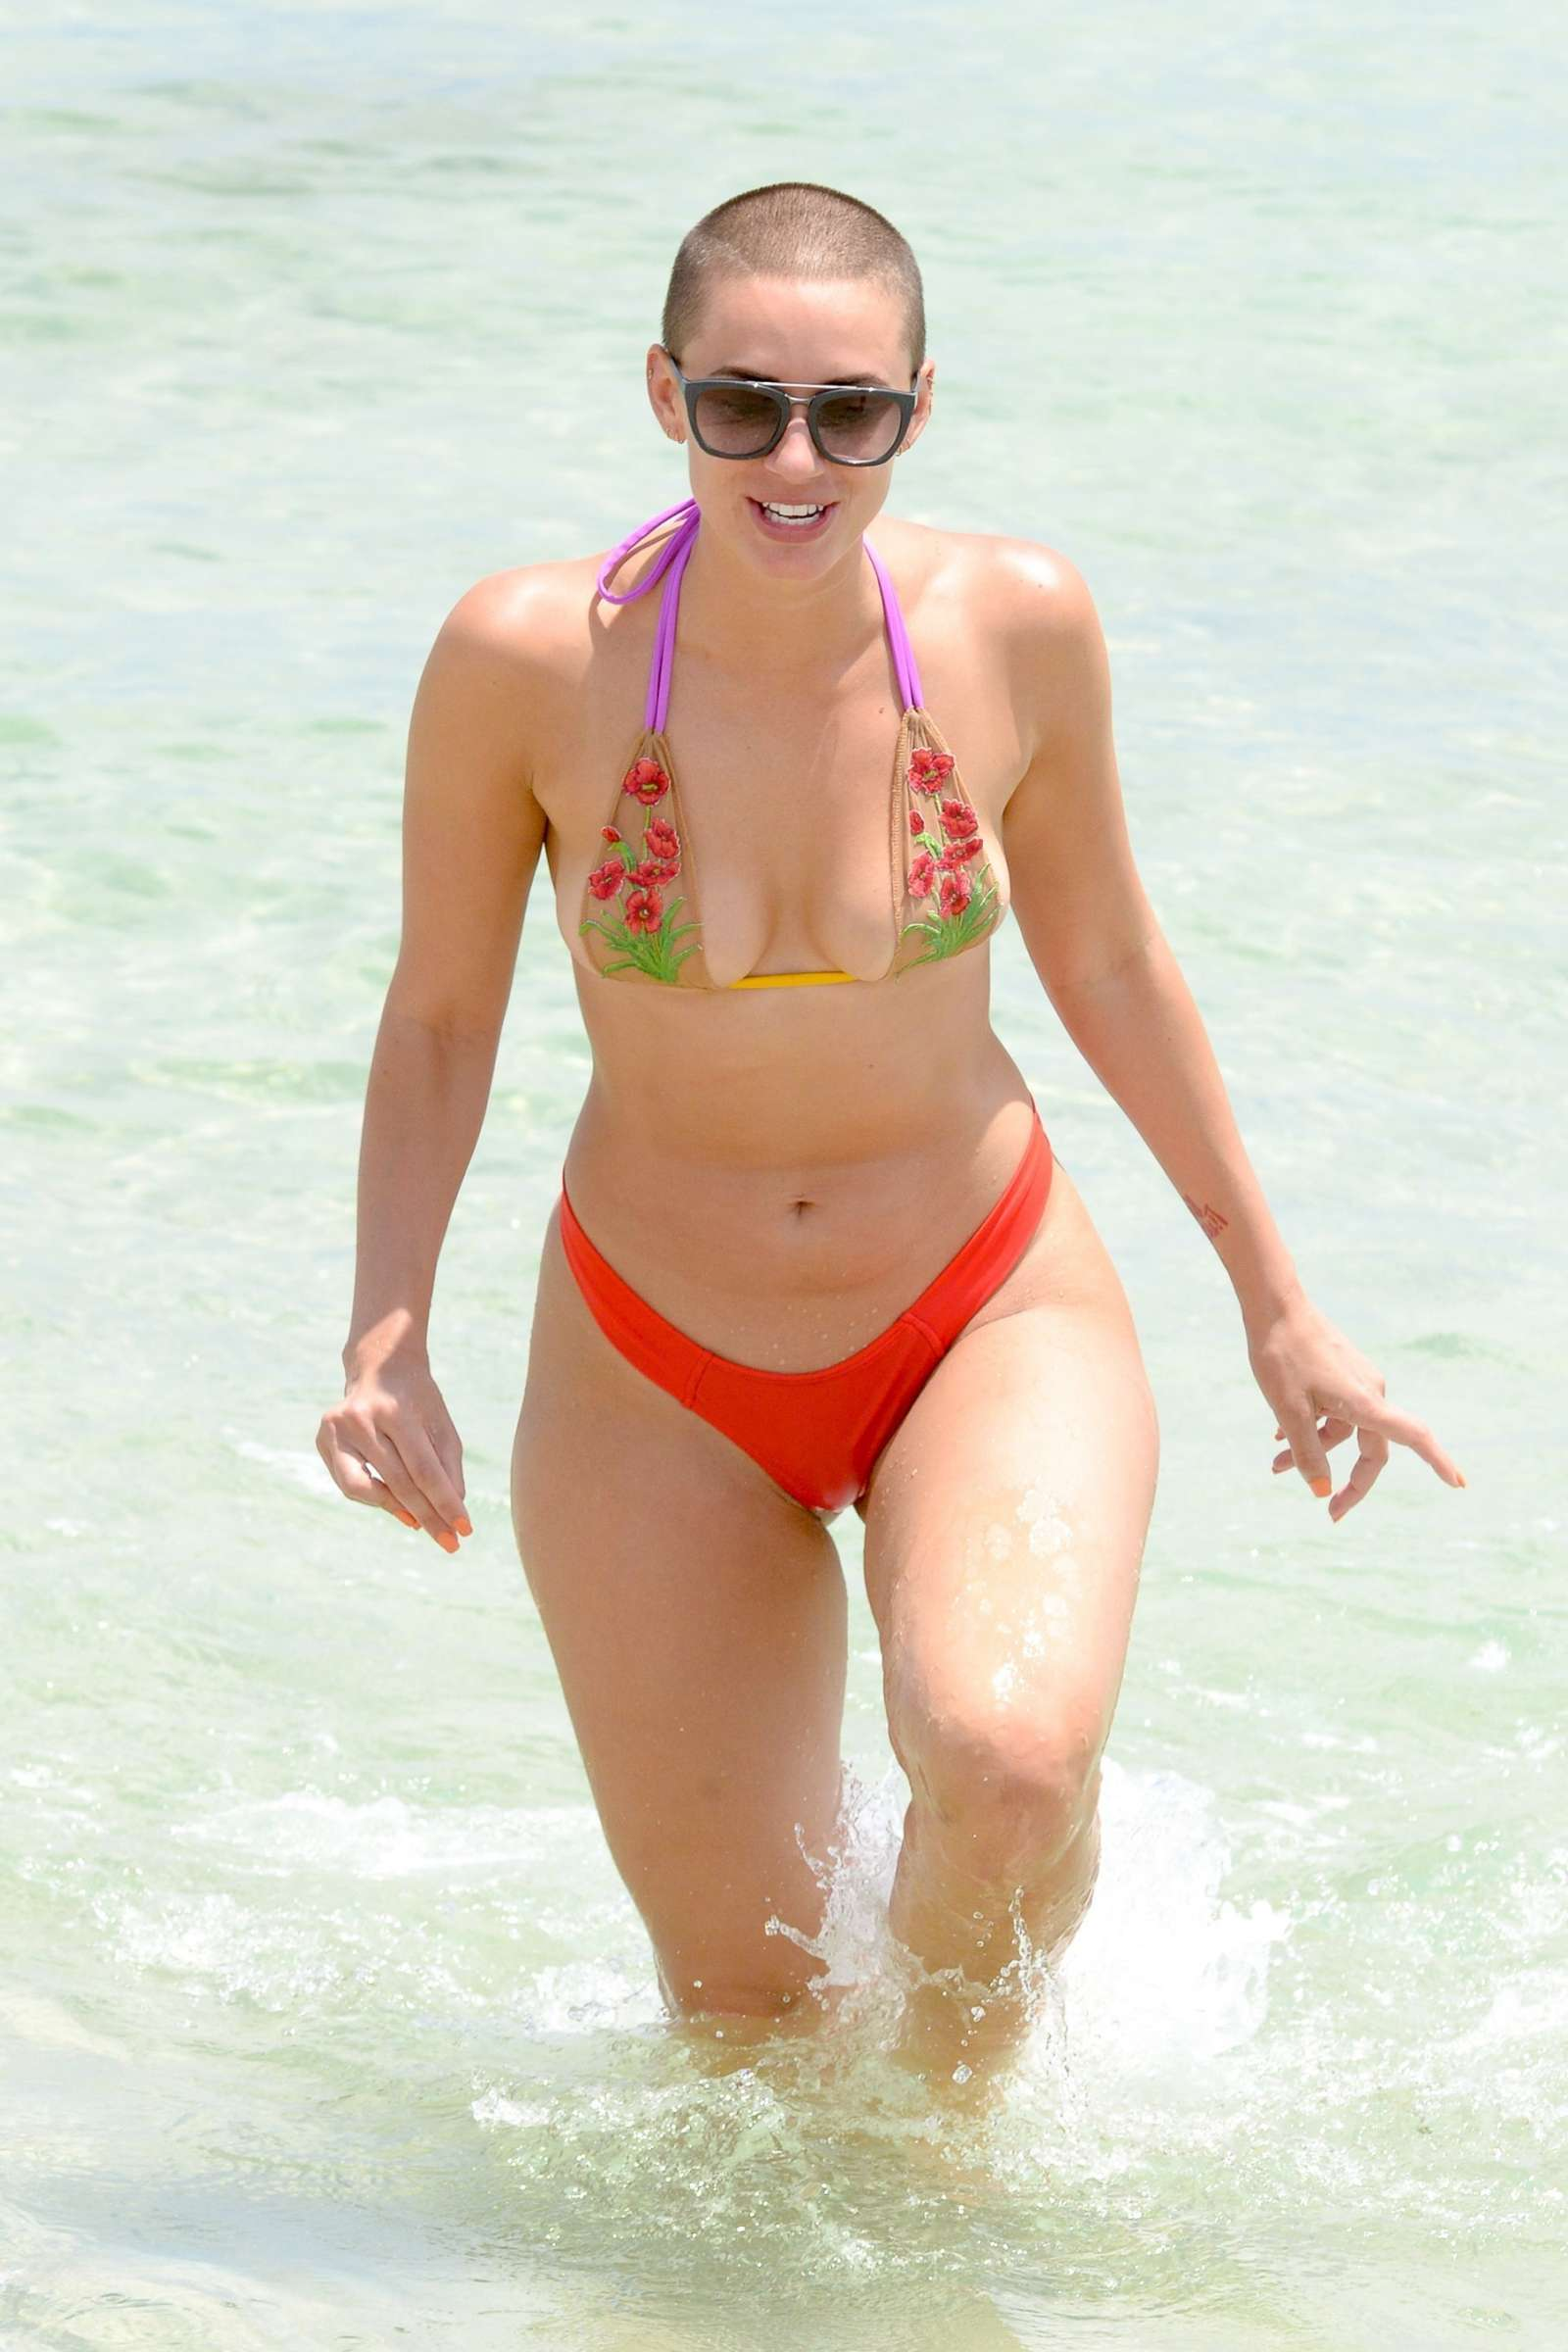 YesJulz in Pink Bikini in Miami Beach Pic 6 of 35